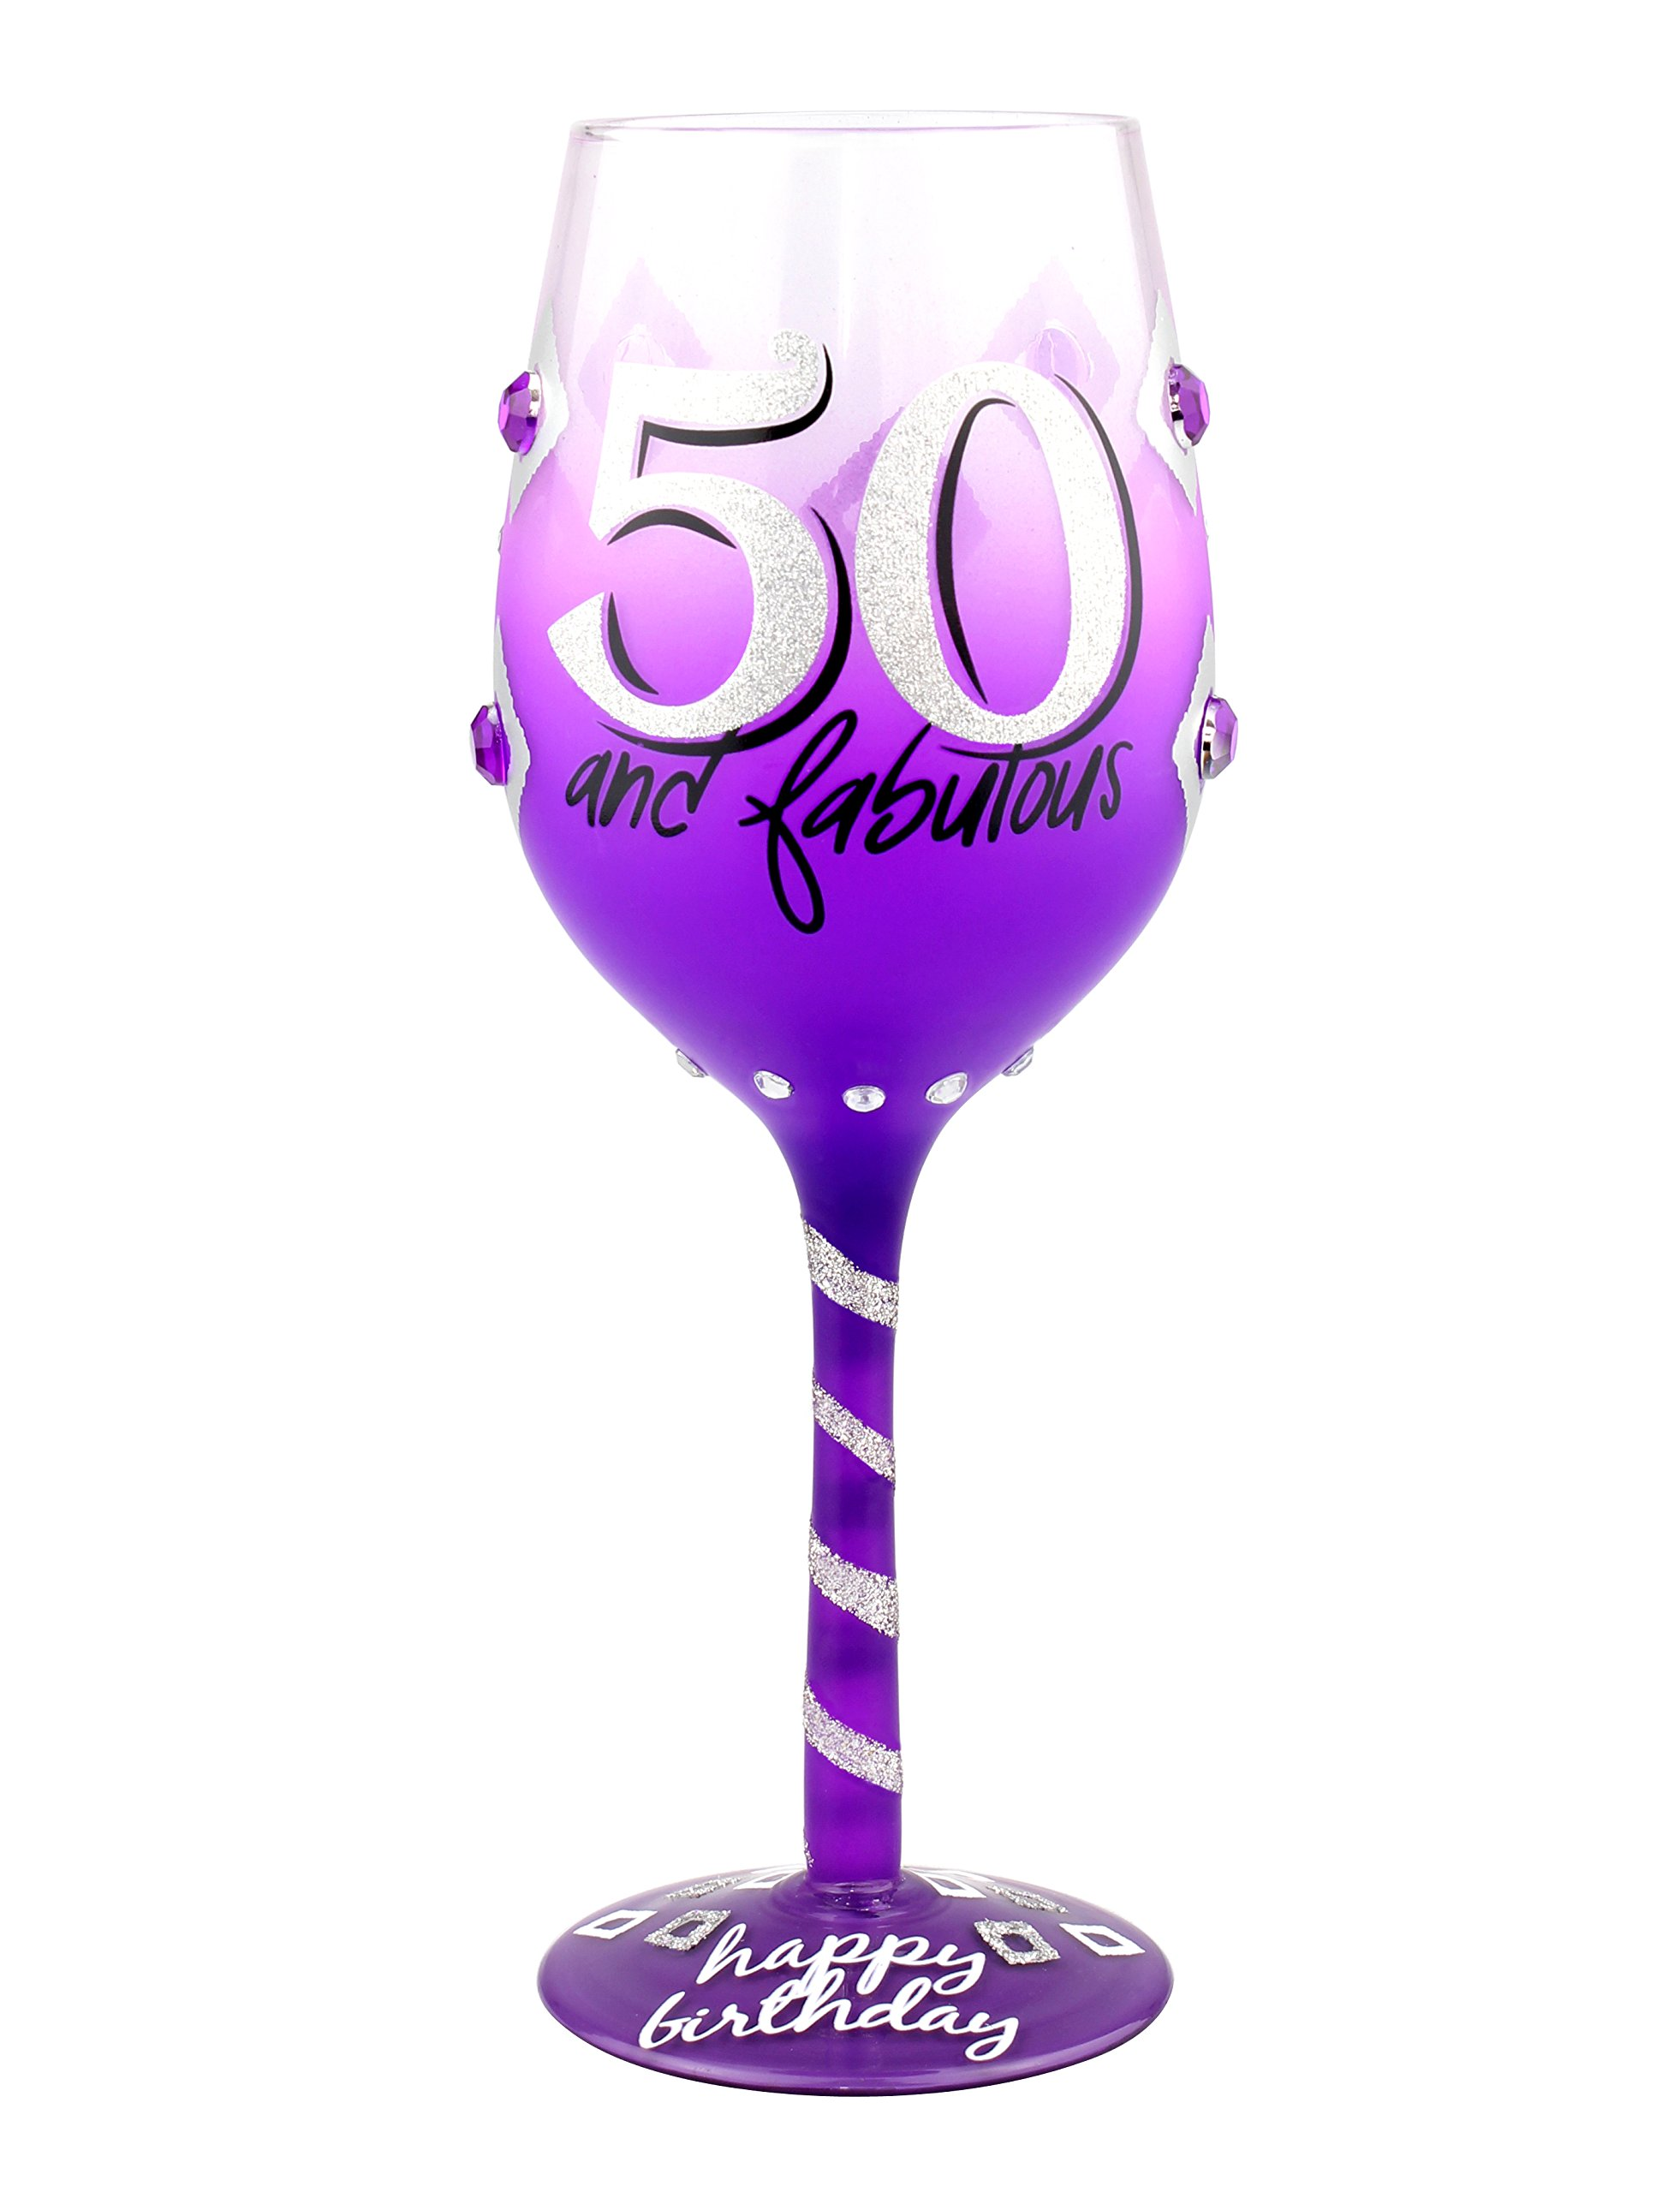 Top Shelf 50th Birthday Wine Glass ; Unique & Thoughtful Gift Ideas for Friends and Family ; Hand Painted Red or White Wine Glass for Mom, Grandma, and Sister